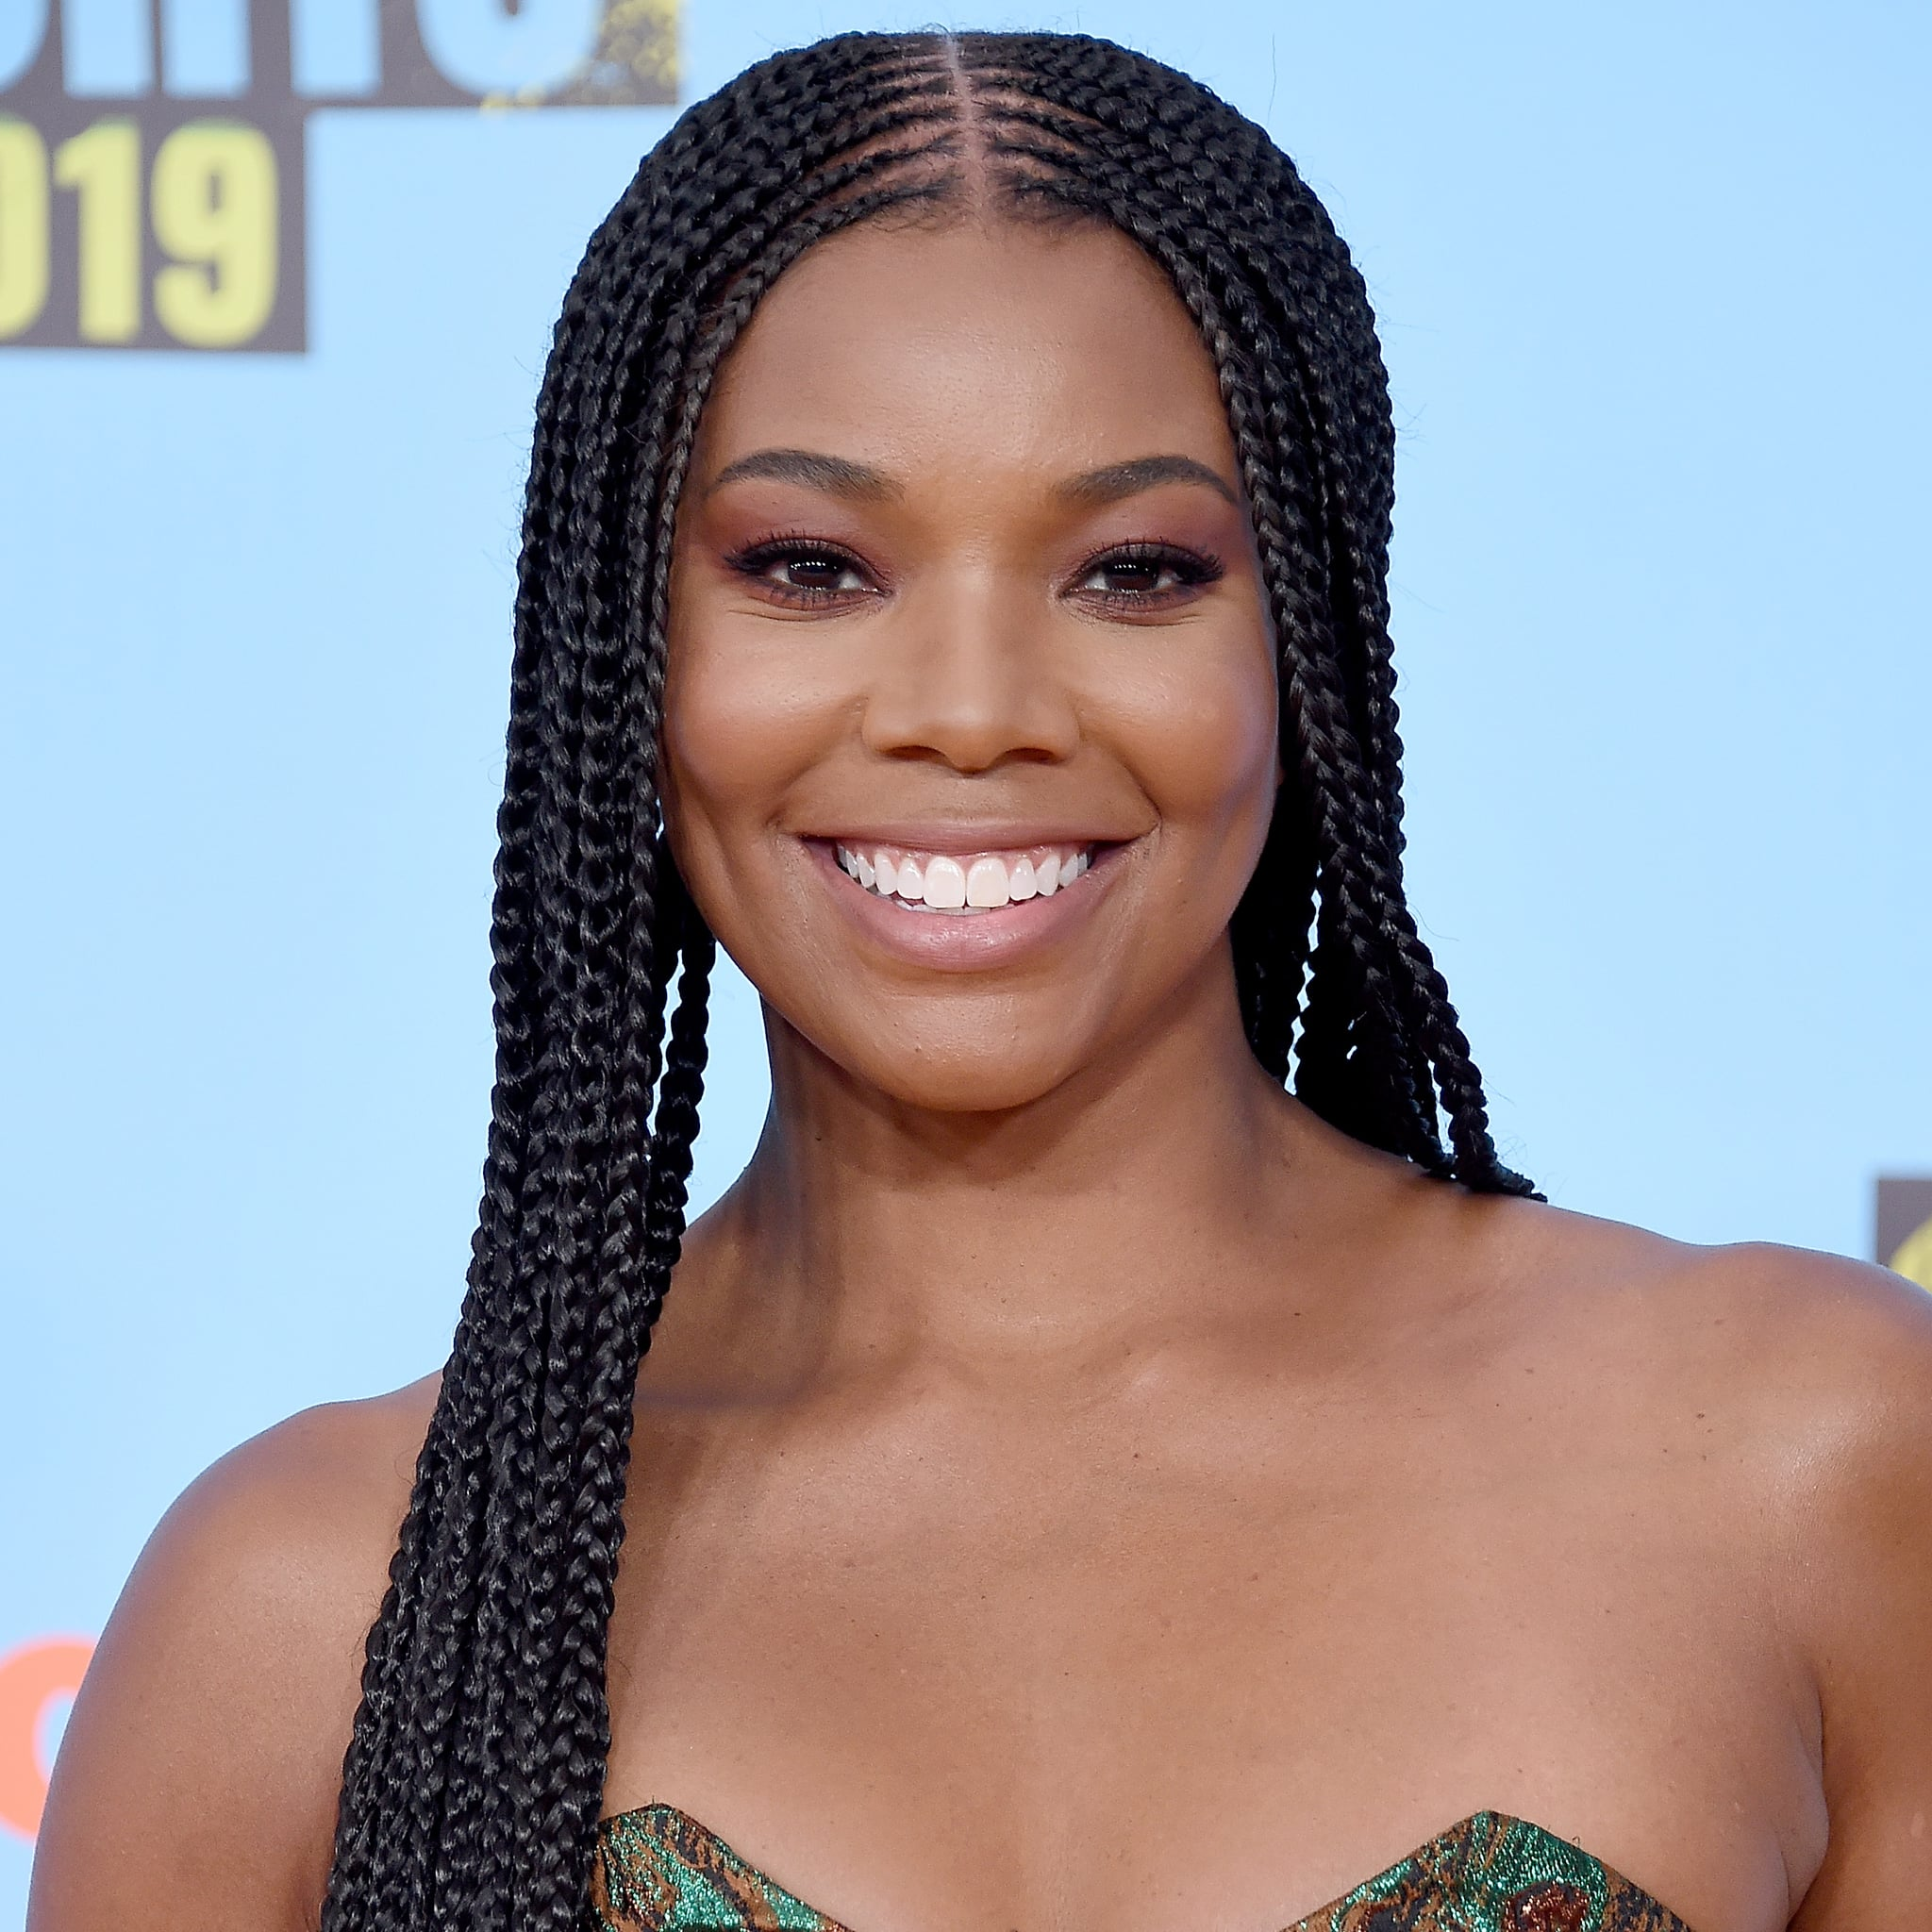 Gabrielle Union's Fresh Look Has Fans In Awe – See Her Latest Photos